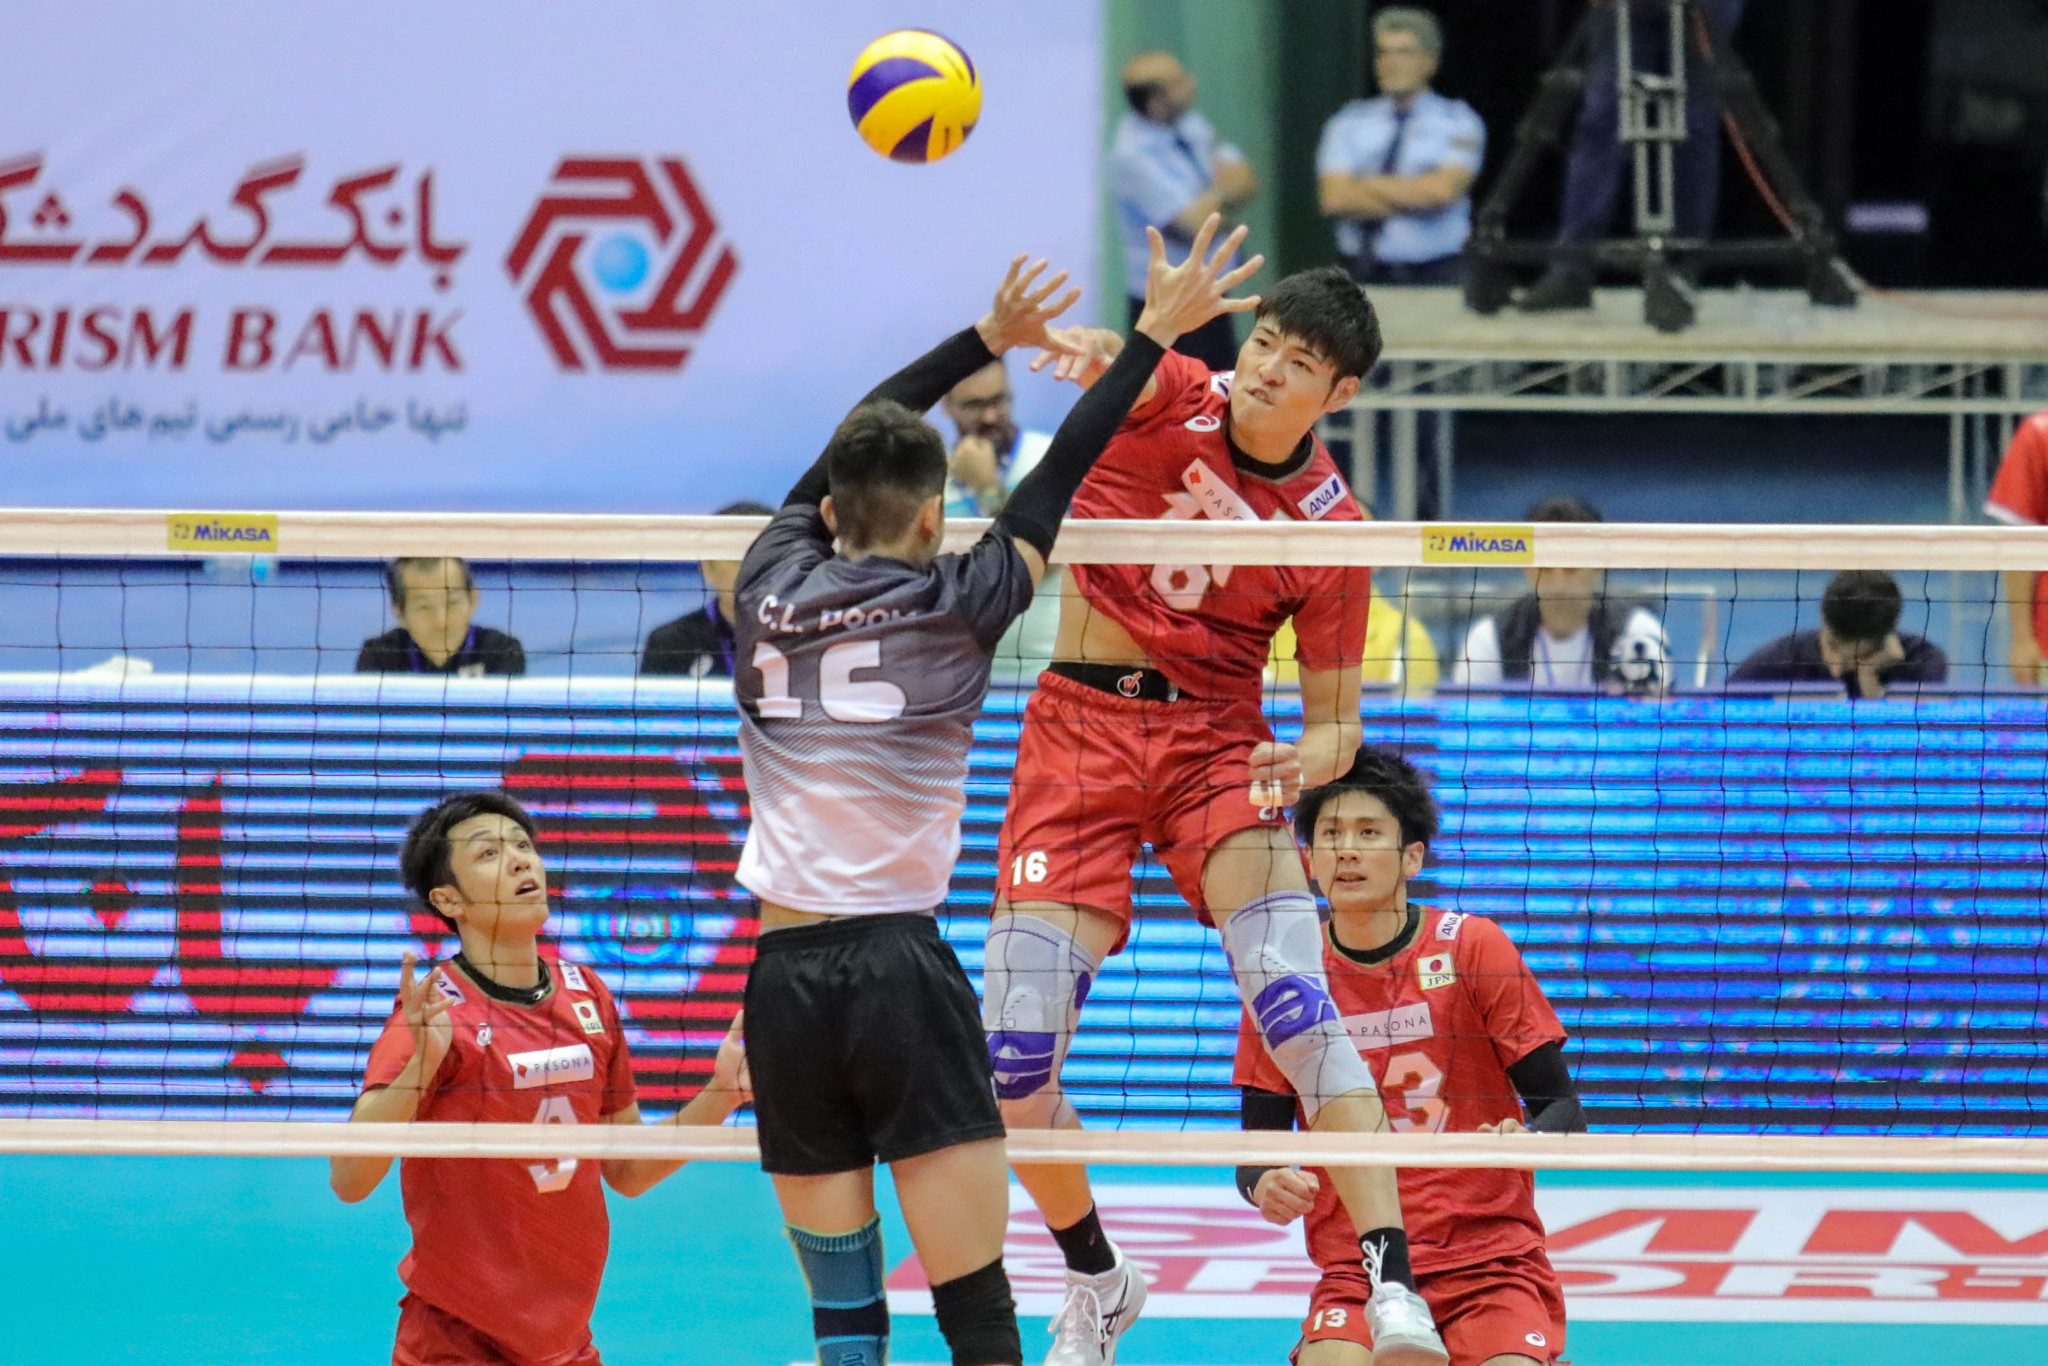 Japan made a dominant start to their defence of the Asian Men's Volleyball title ©AVC